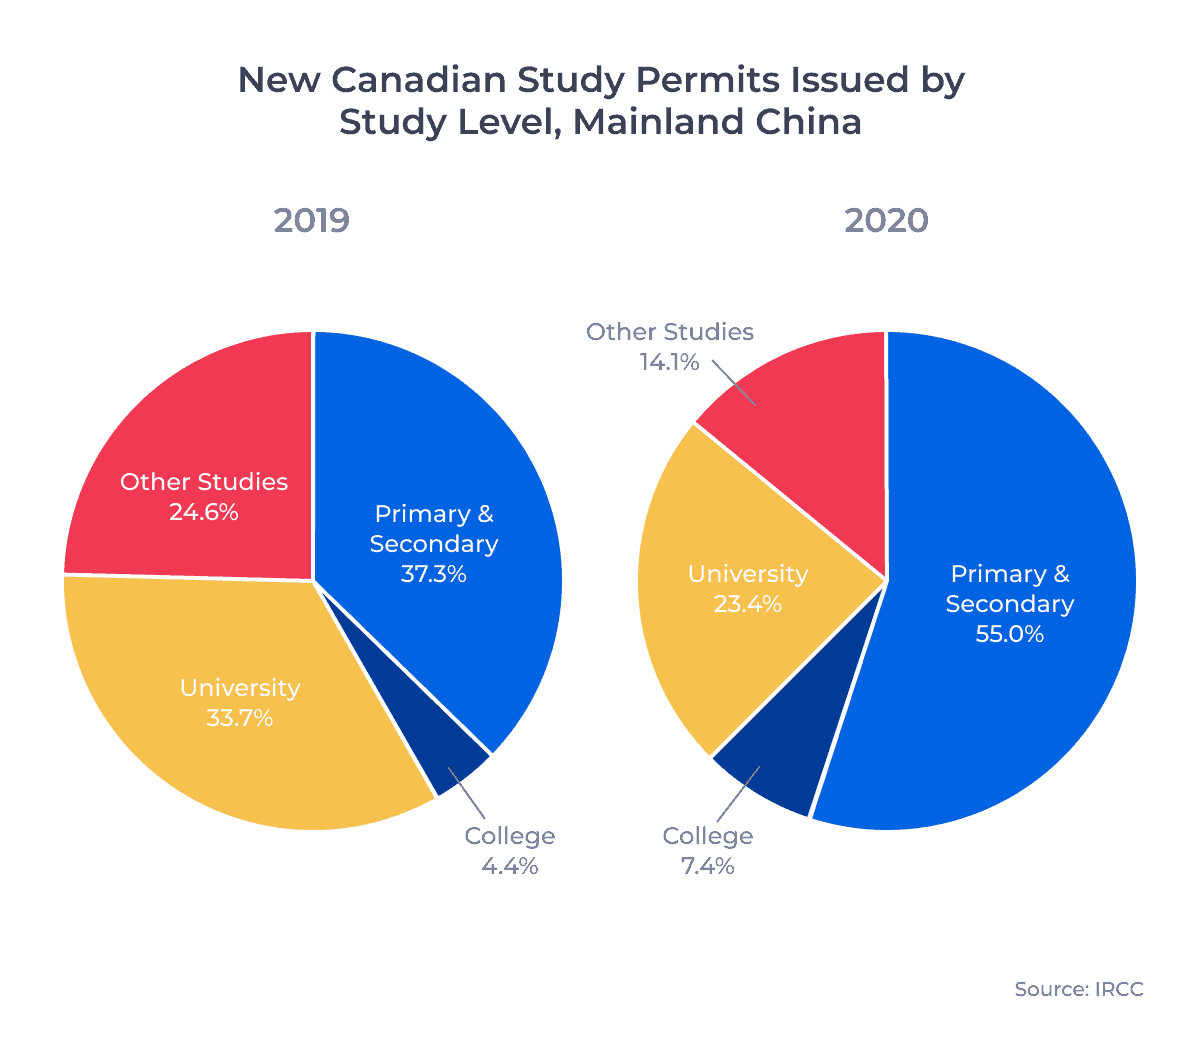 Two circle charts showing the distribution by study level of new Canadian study permits issued to residents of Mainland China in 2019 and 2020. Examined in detail below.